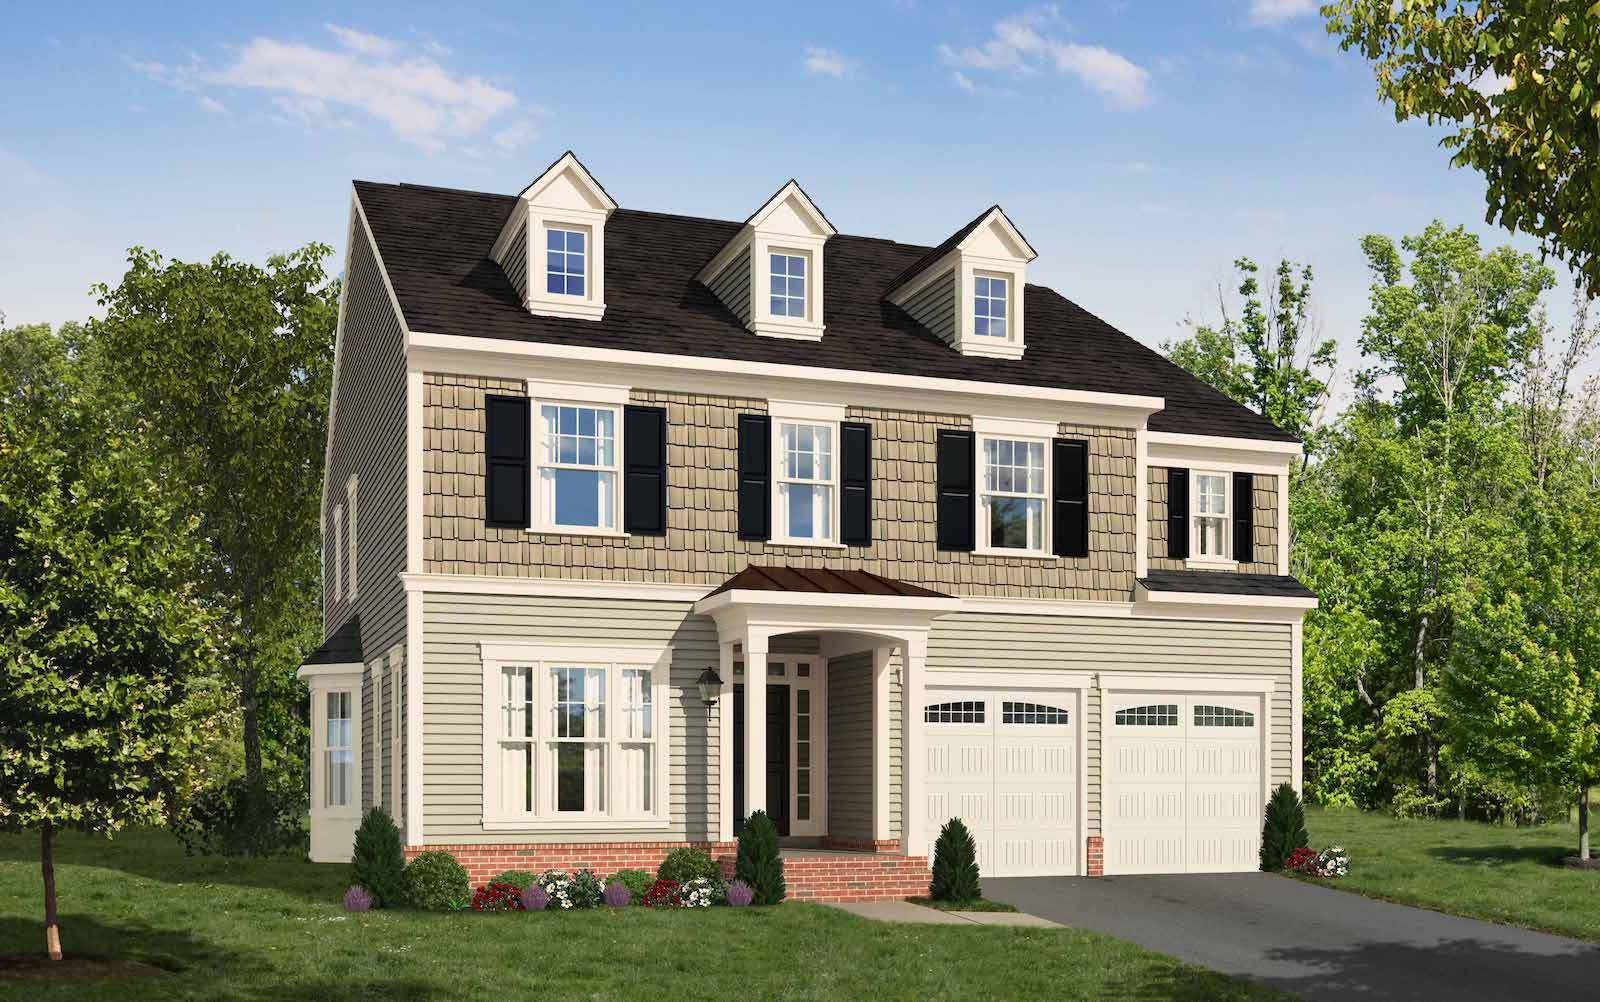 Exterior:Elevation 1 of the Sumner a home design by Brookfield Residential at Ridgeview